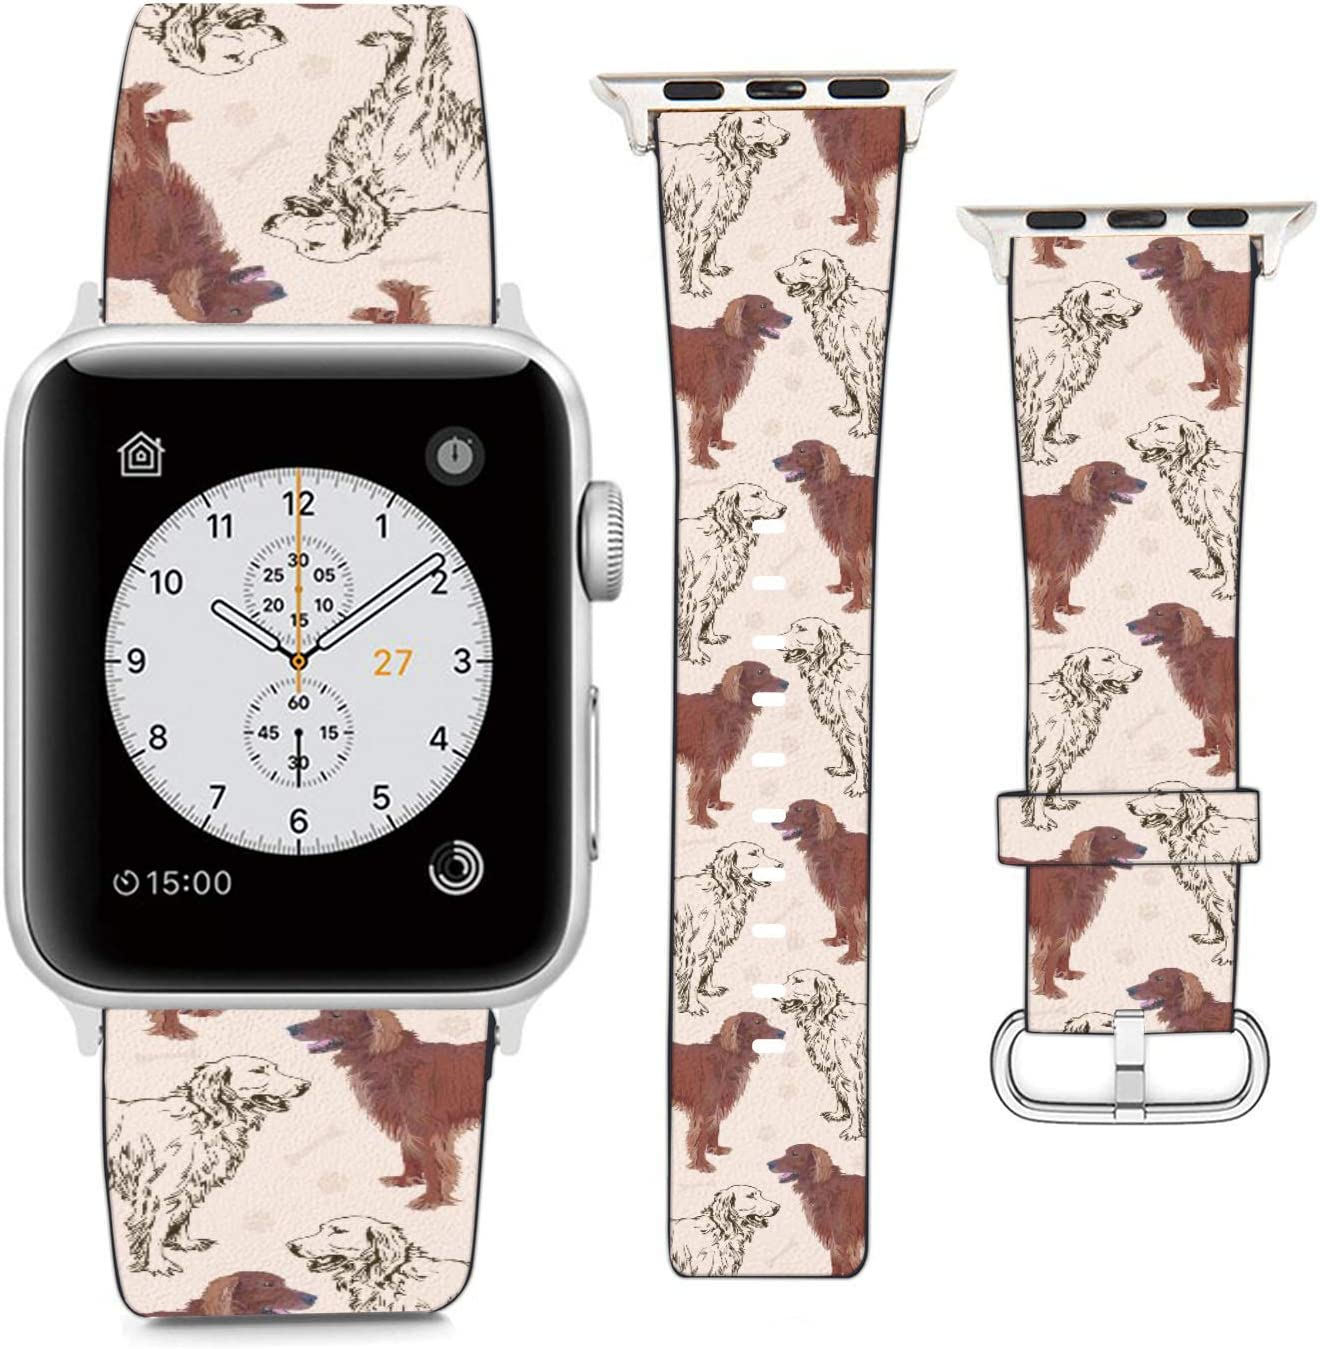 Compatible with Apple Watch Wristband 42mm 44mm, (Golden Retriever Dog) PU Leather Band Replacement Strap for iWatch Series 5 4 3 2 1